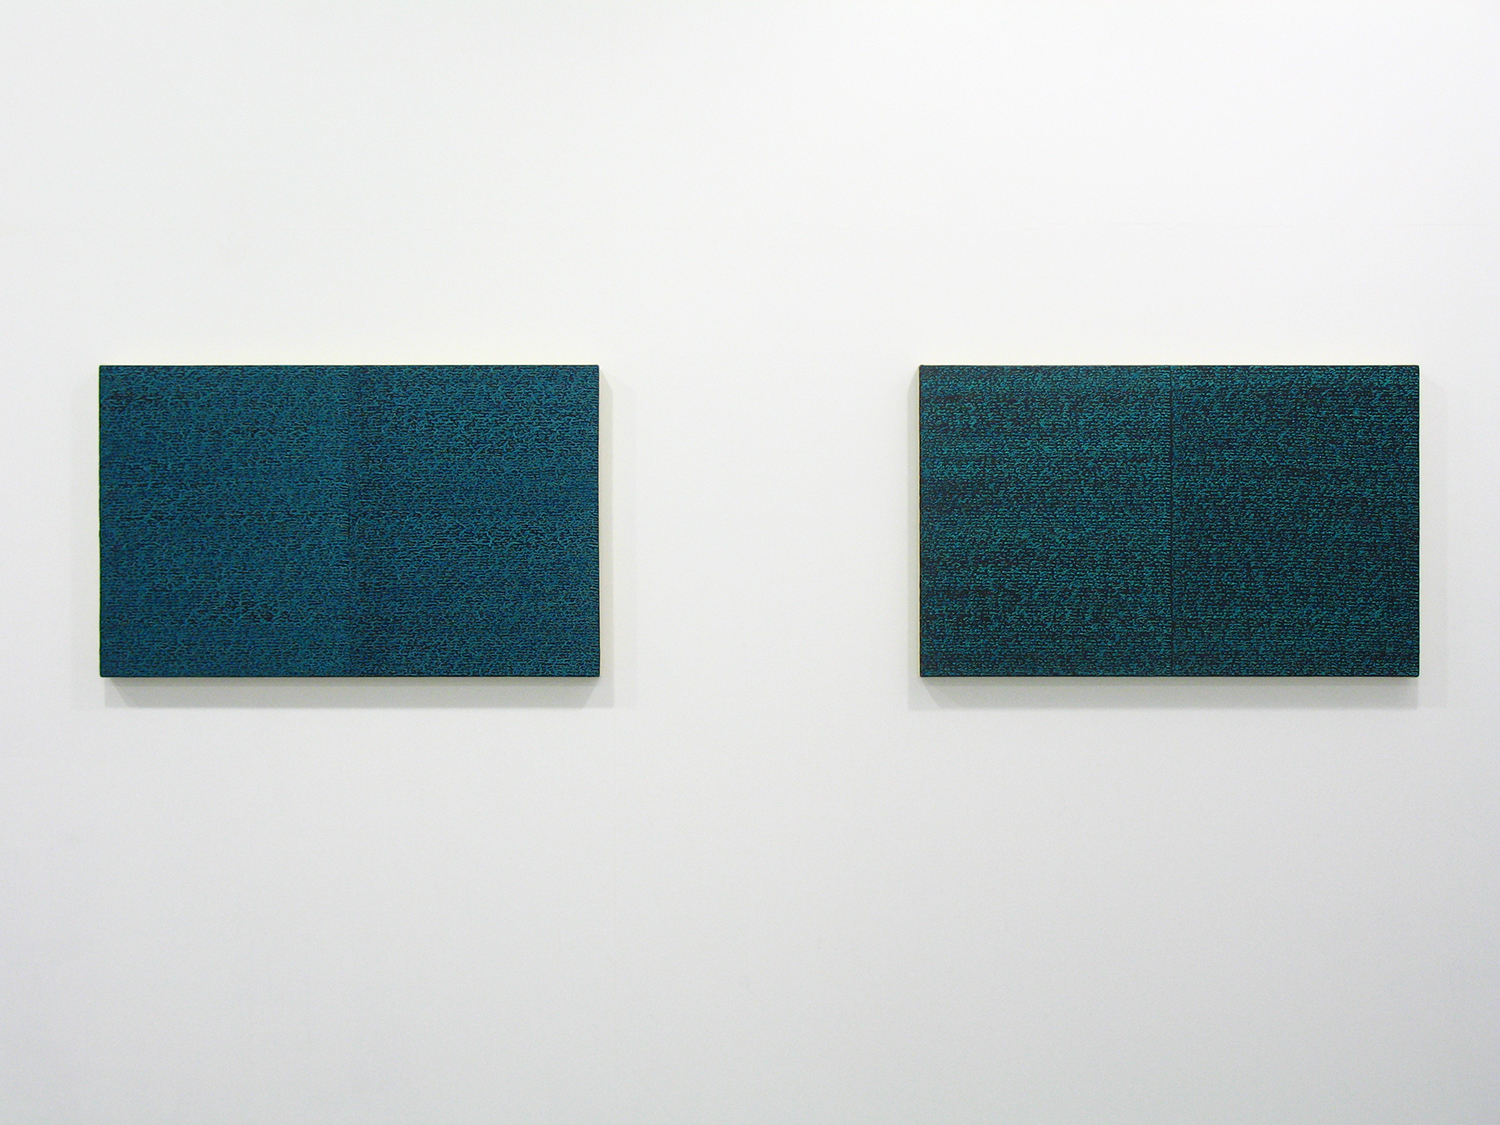 サイモン・フィッツジェラルド Simon Fitzgerald<br>Open Book green-green (left) Open Book green dark (right)<br>Oil, Amber on canvas over panel 37 x 60 cm<br>2008 each